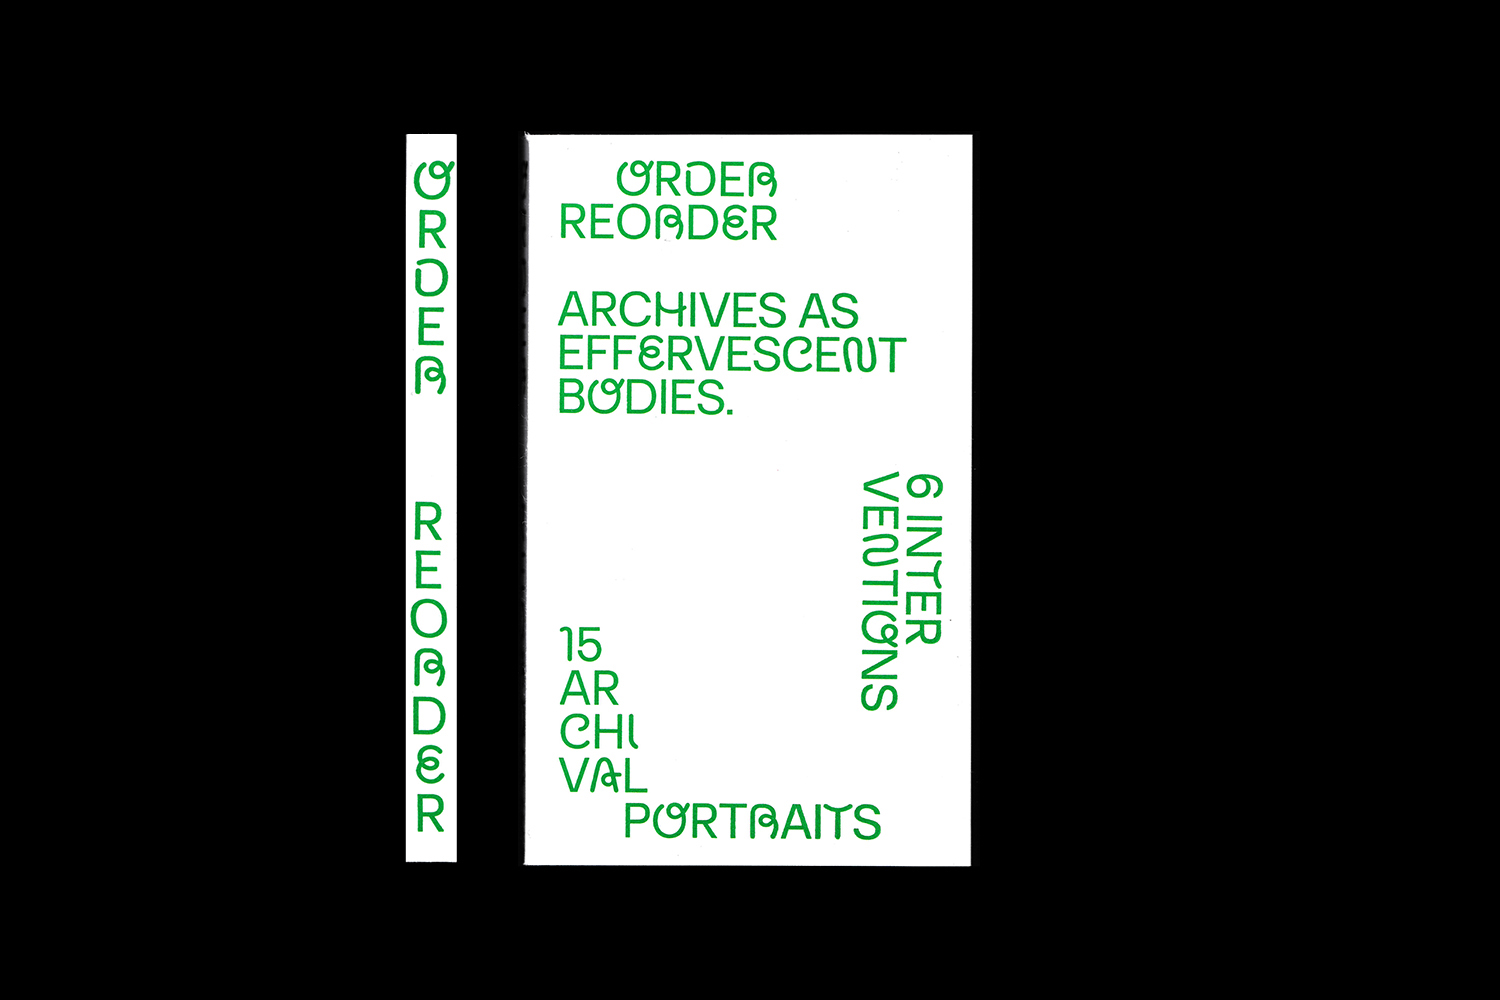 Order-Reorder: Archives as Effervescent Bodies by Tom Finn